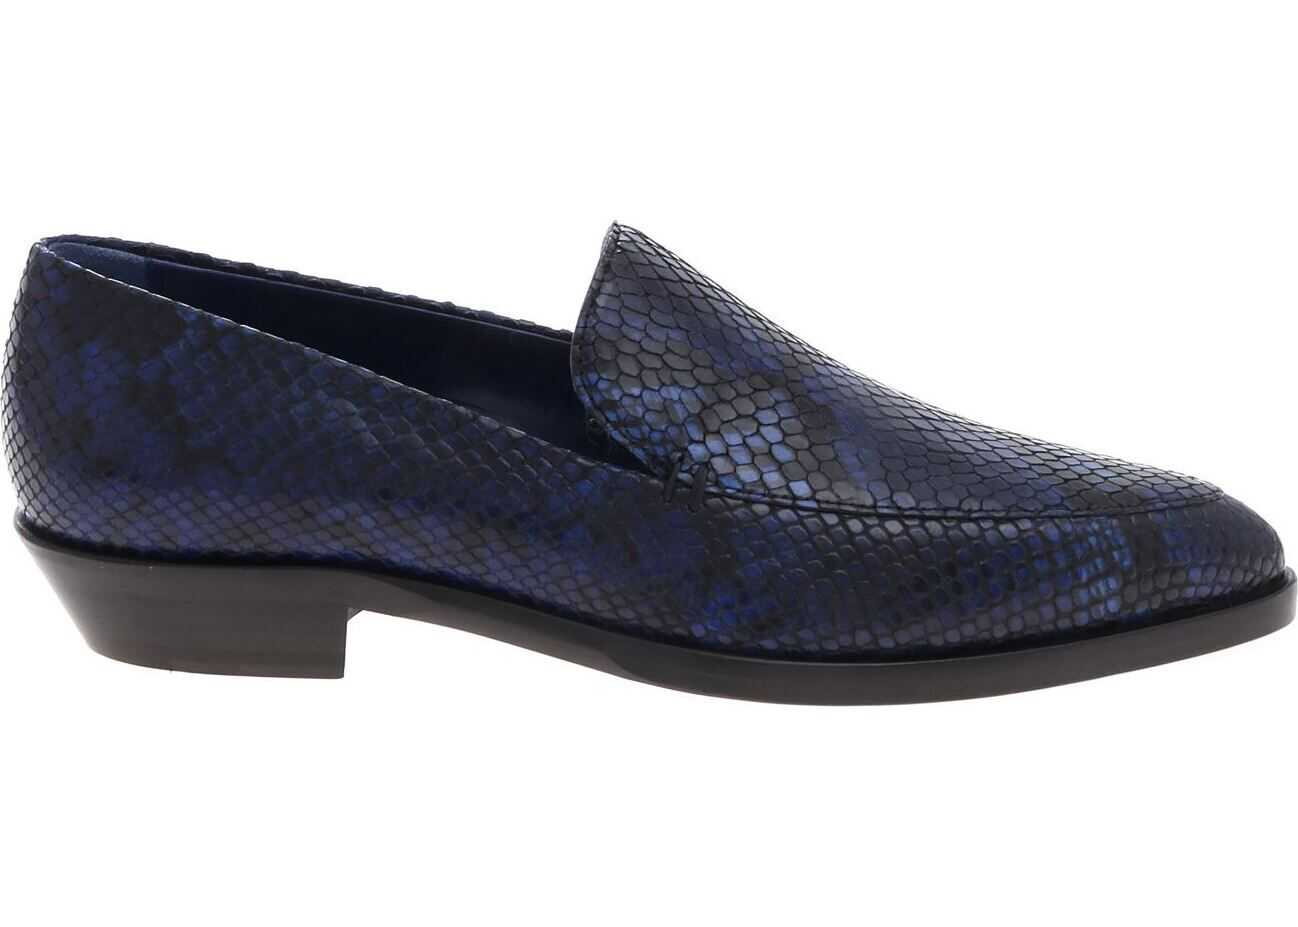 Paul Smith Reptile-Effect Loafer In Blue And Black Blue